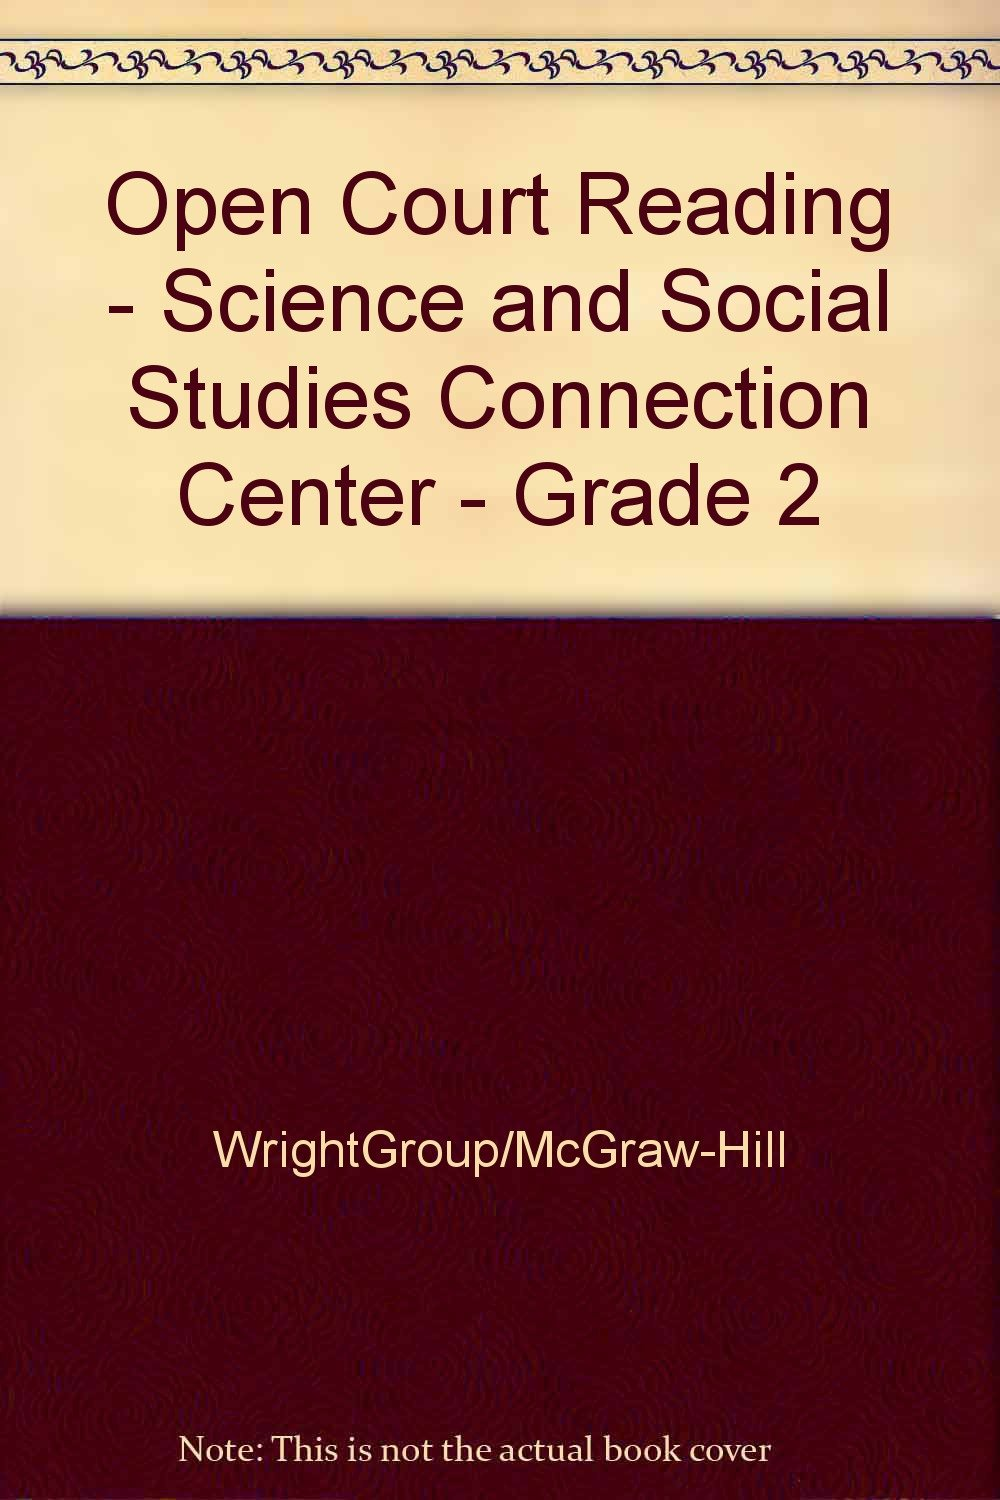 Download Open Court Reading - Science and Social Studies Connection Center - Grade 2 PDF